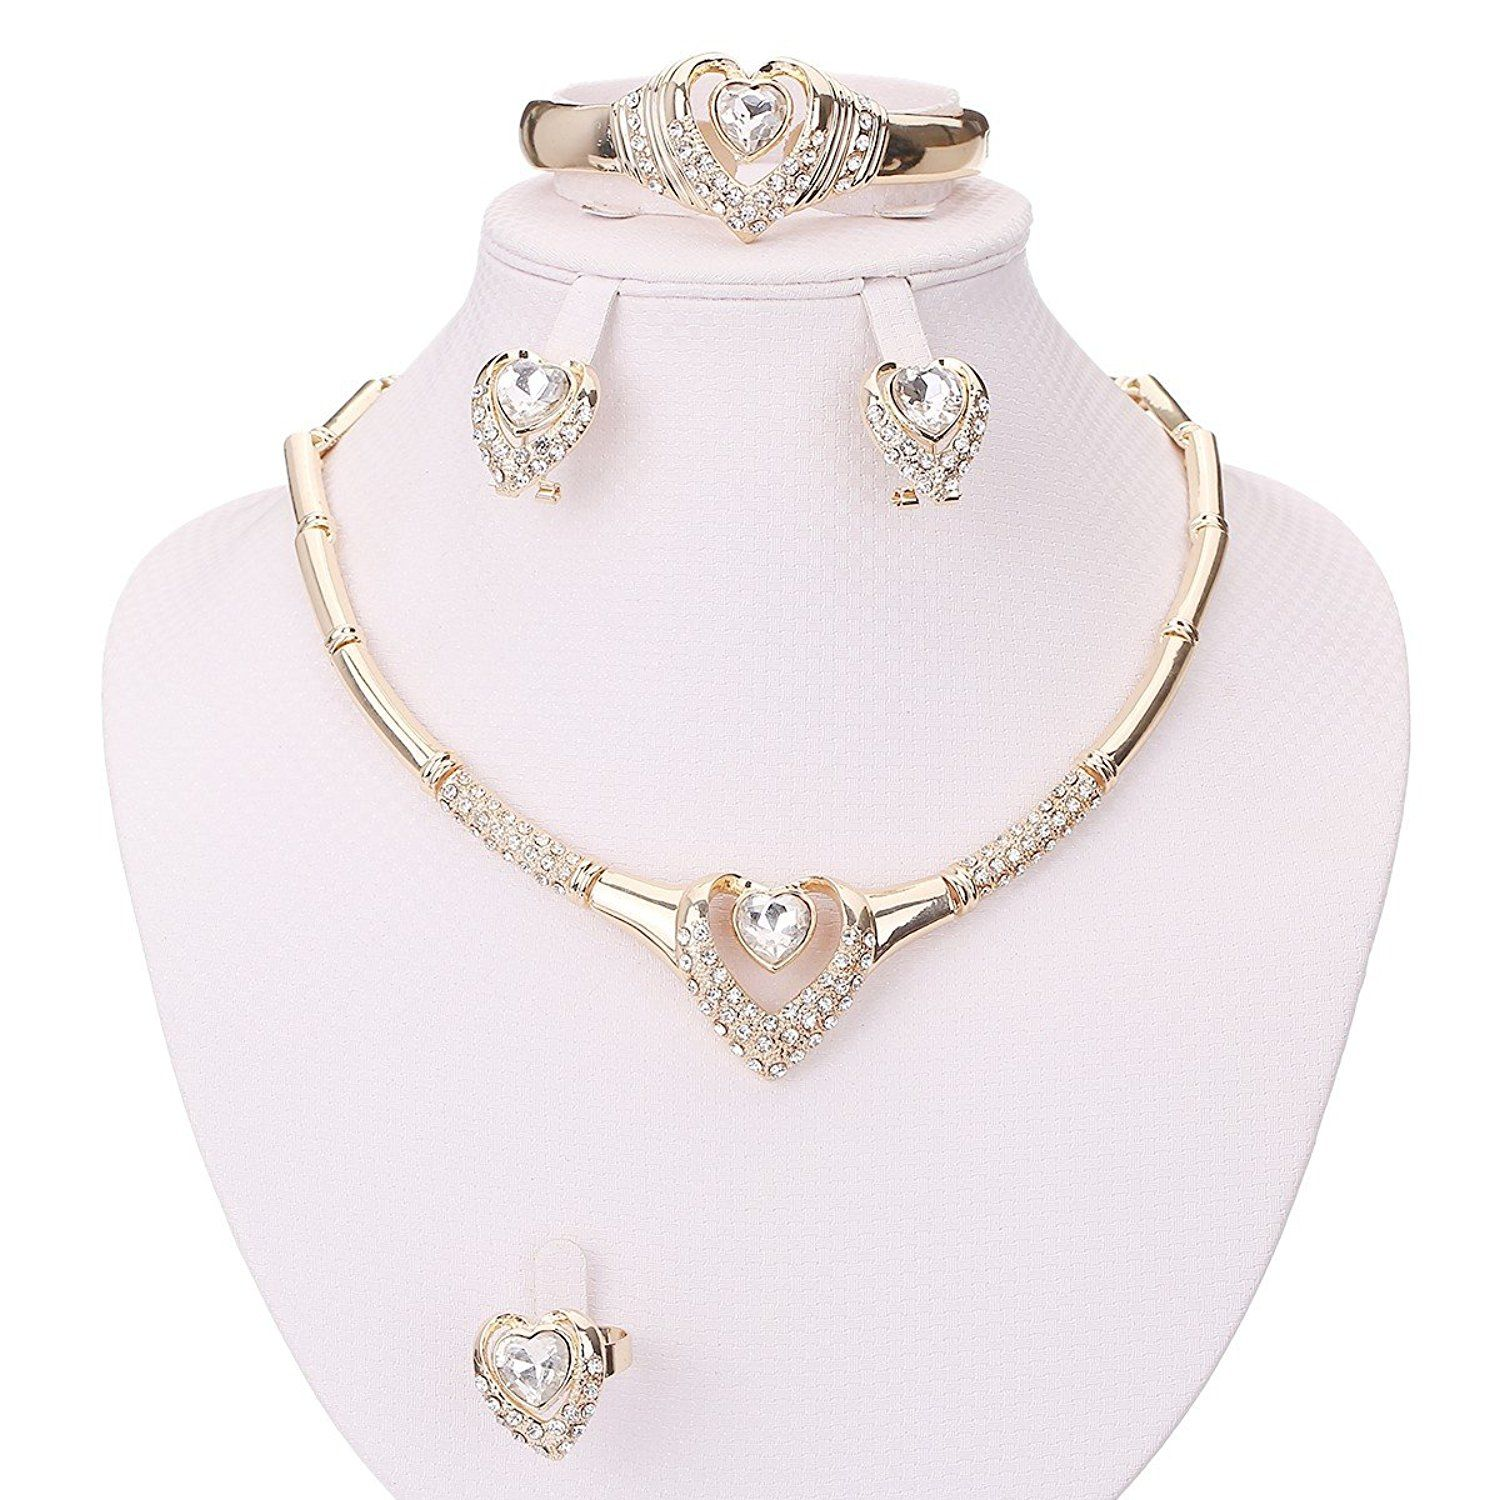 Moochi zircon heart gold plated crystal necklace earrings bracelet